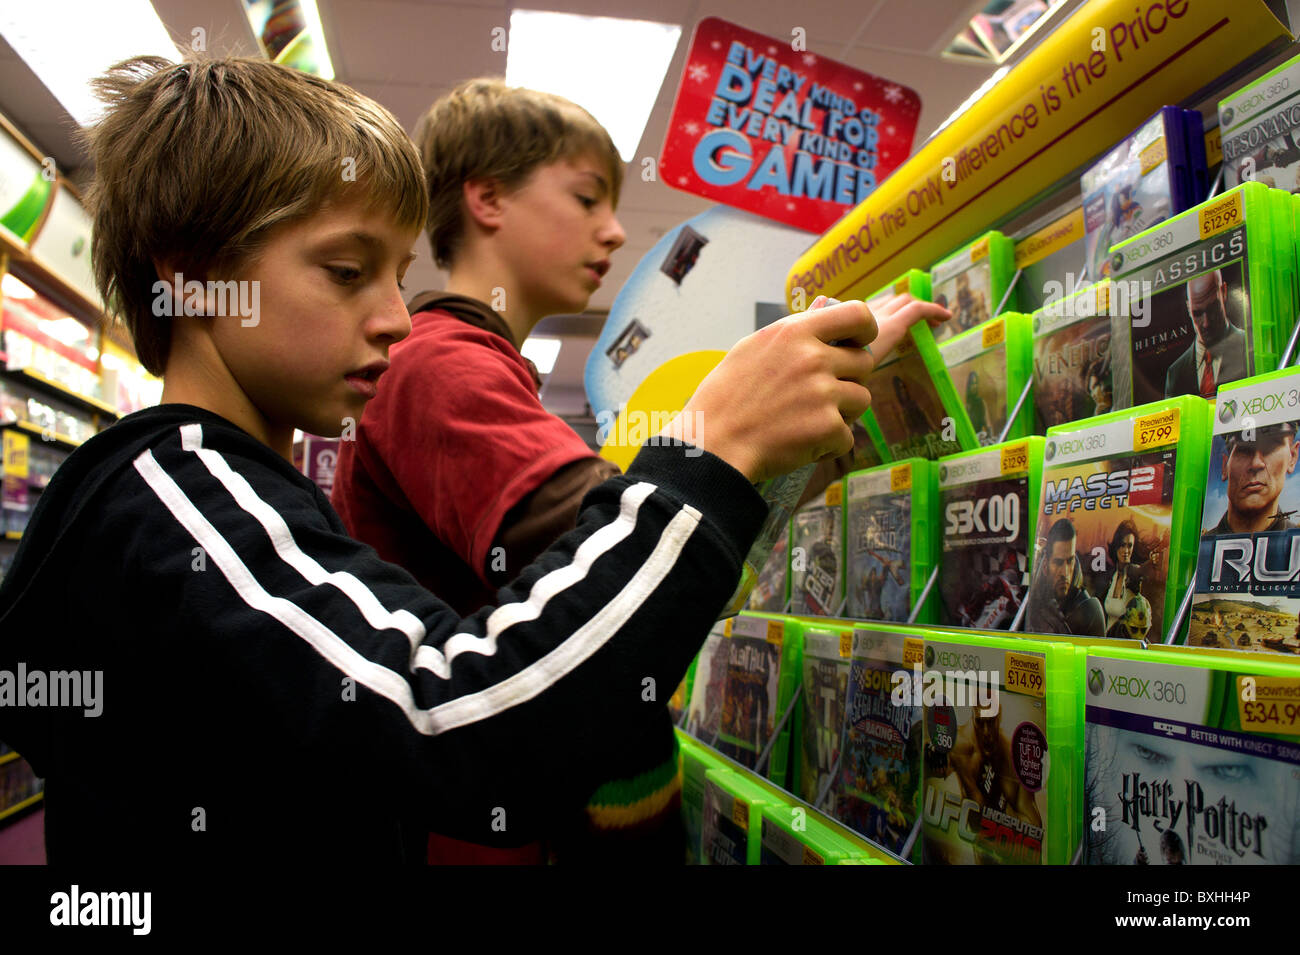 Stock Photo   two teenage boys looking at video games in a Game shop  UK. two teenage boys looking at video games in a Game shop  UK Stock